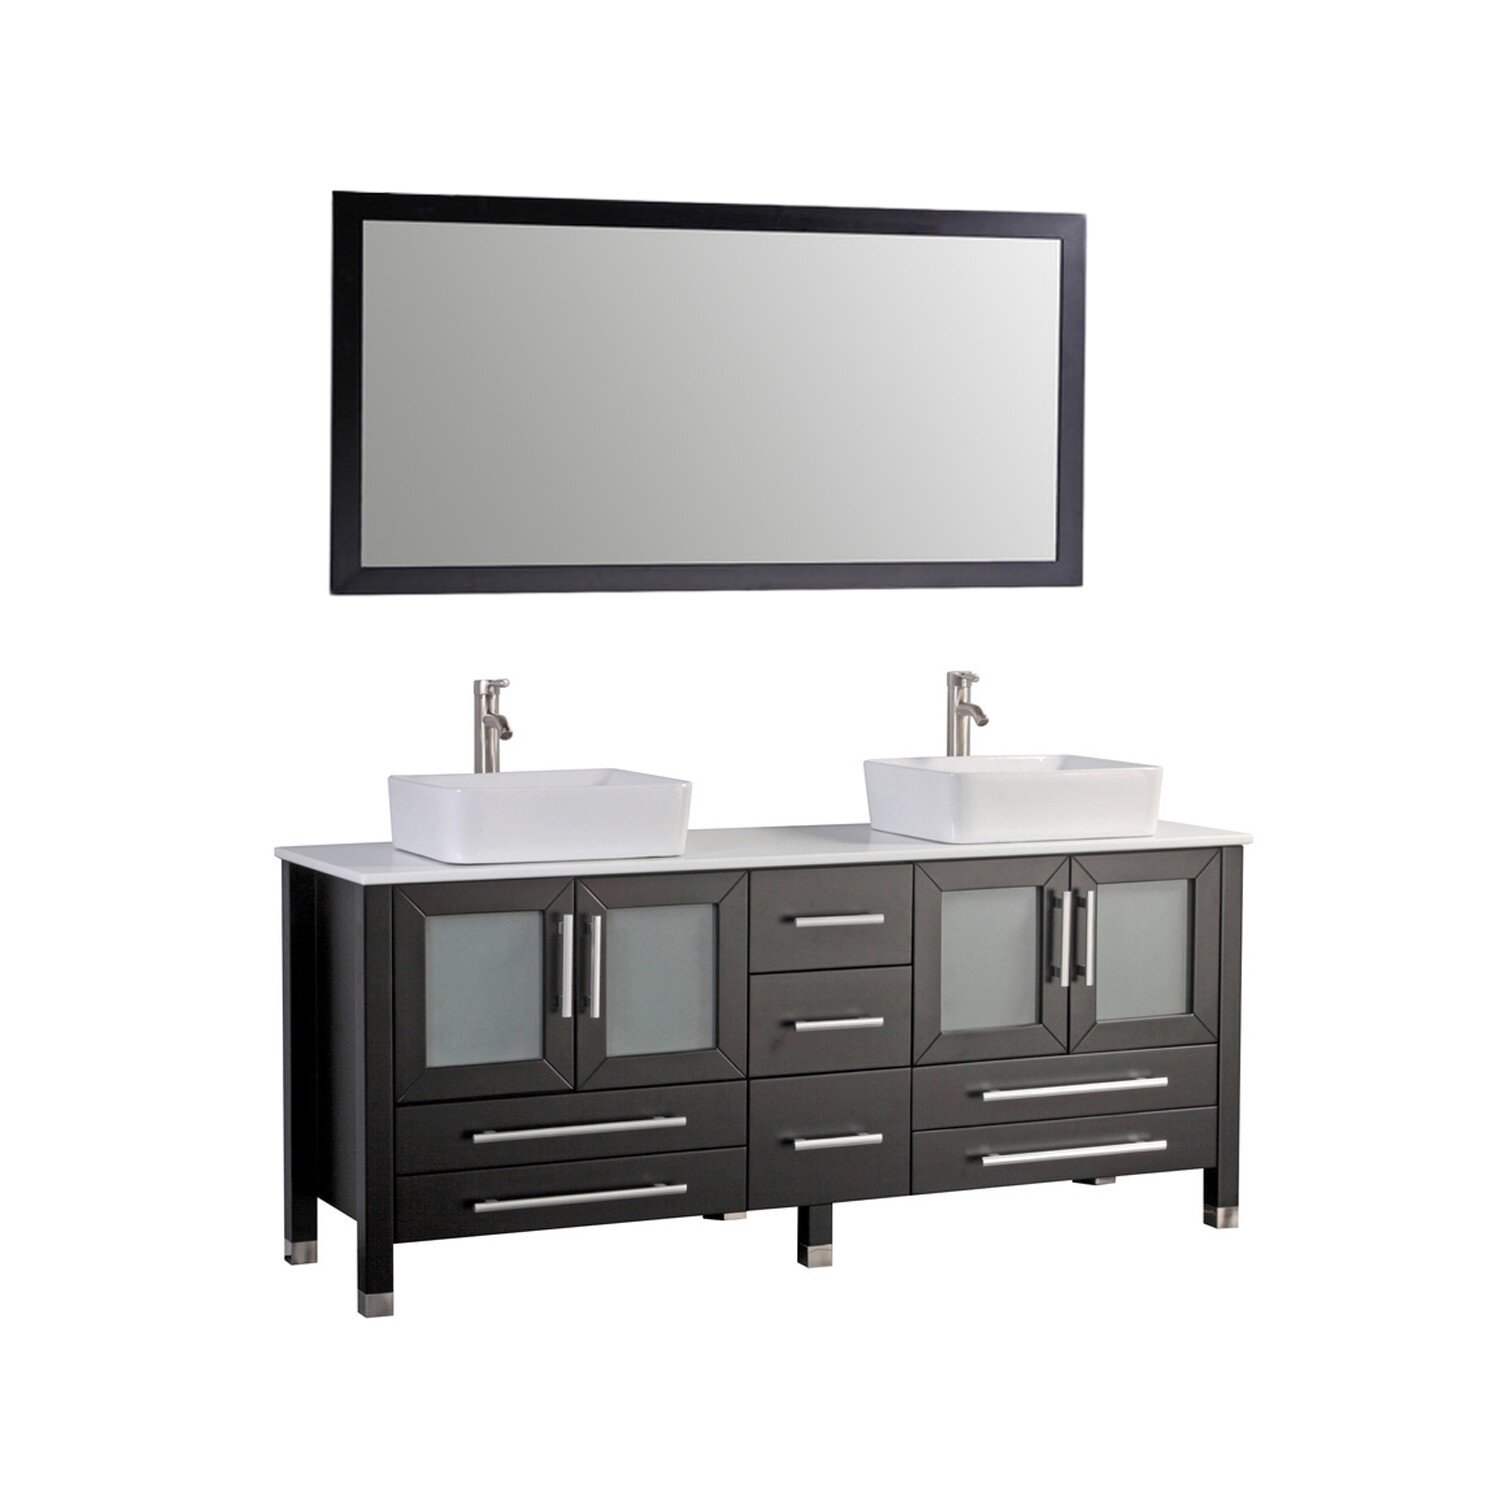 Luxury  Rhodes Encore Illuminated Led Bathroom Mirror With Integrated Stereo